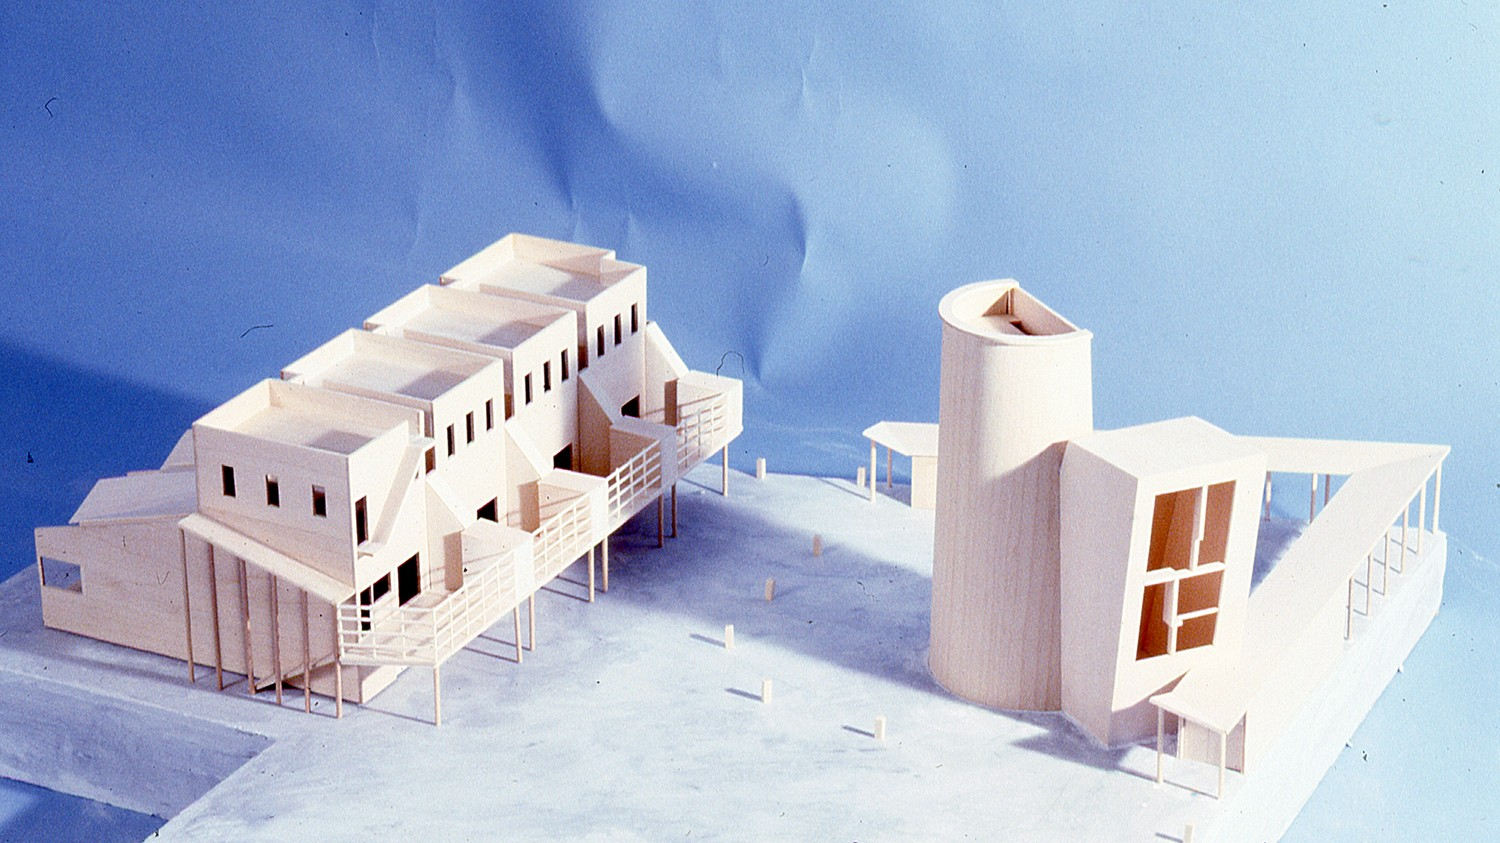 https://stevenholl.sfo2.digitaloceanspaces.com/uploads/projects/project-images/StevenHollArchitects_Ludlow_Model_3_WH.jpg